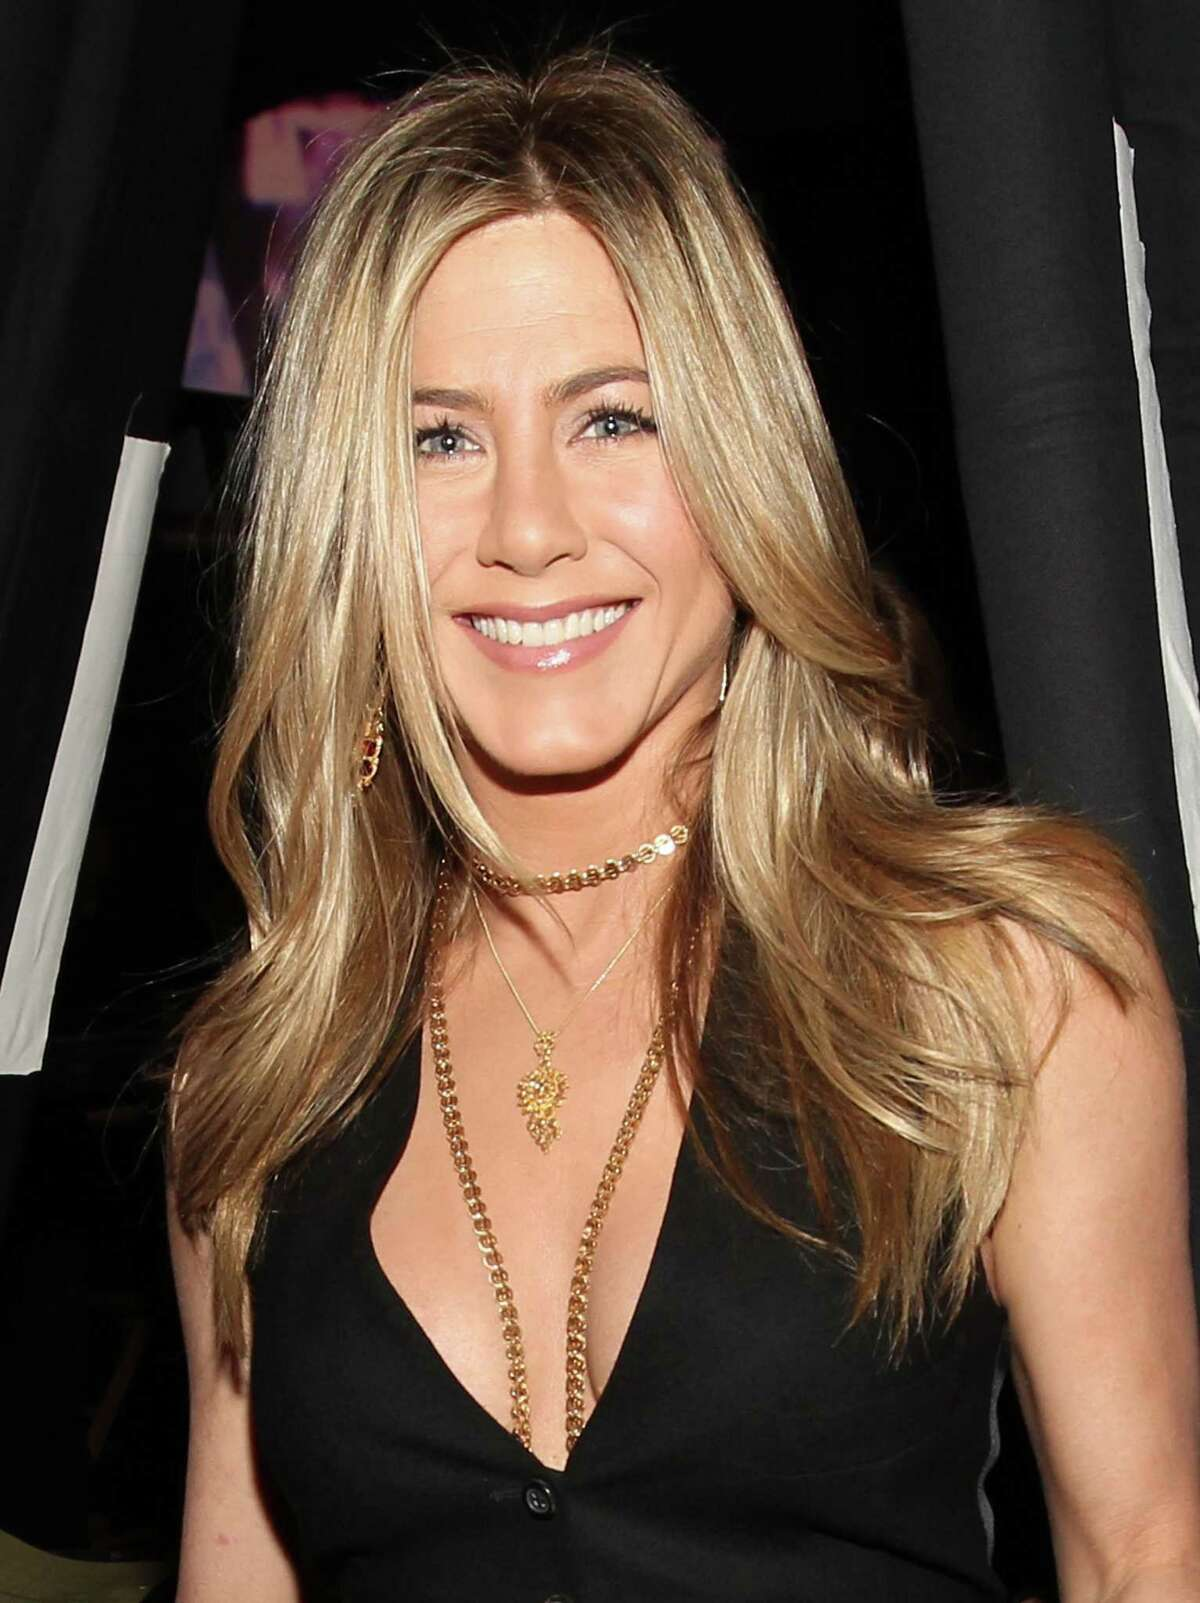 Jennifer Aniston's films, big or small, hold particular interest to our film critic.